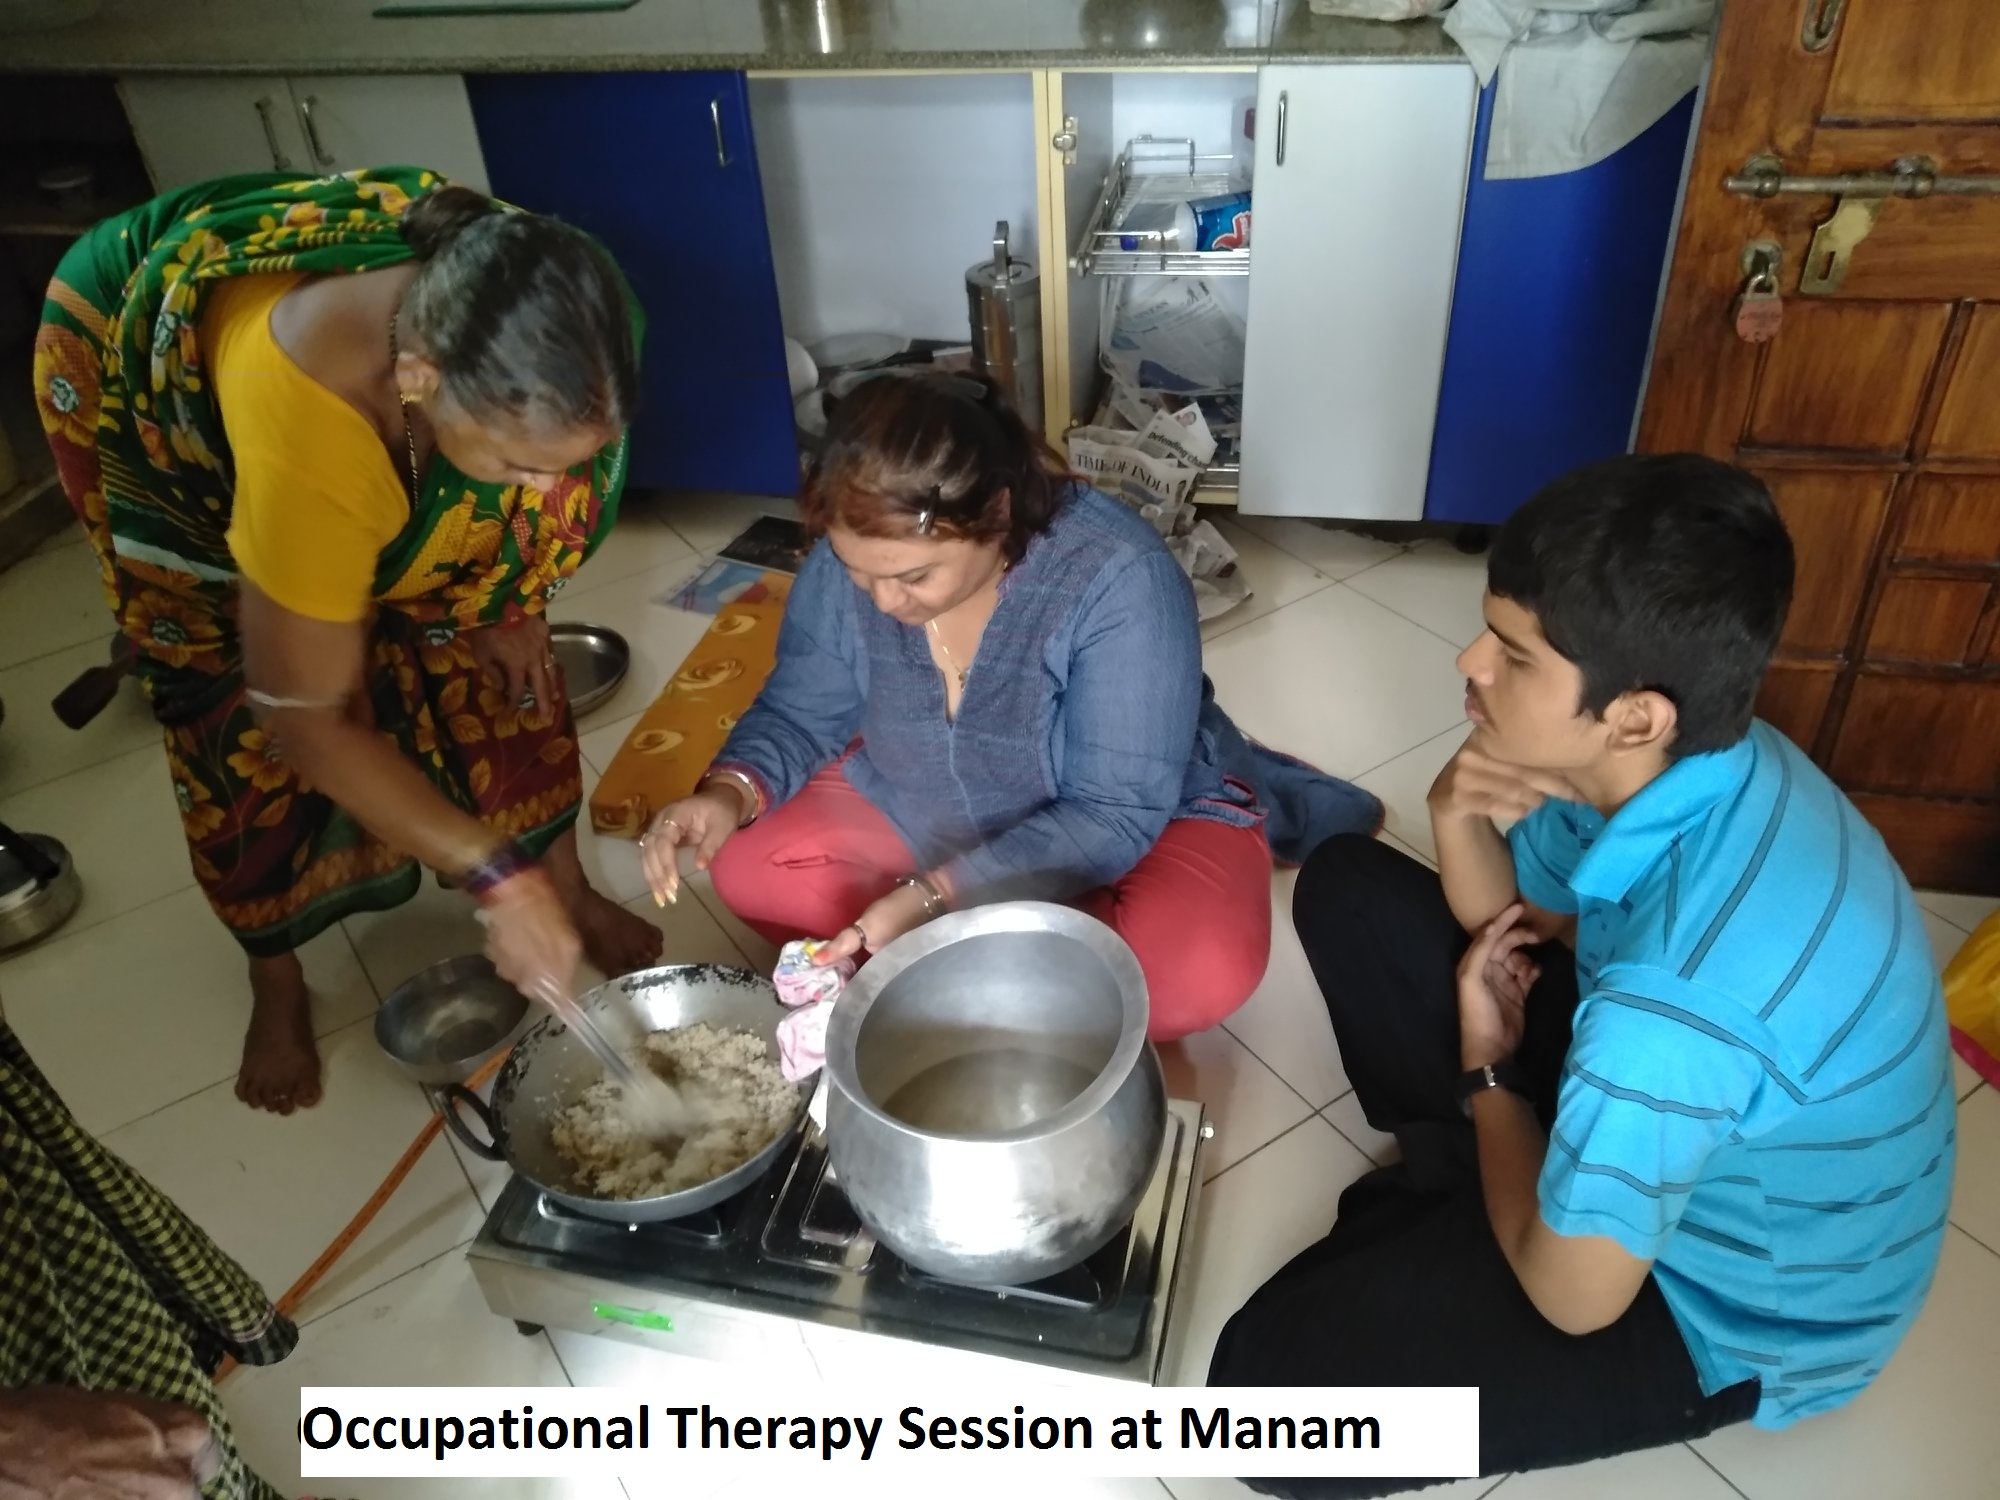 OCCUPATIONAL THERAPY SESSION AT MANAM